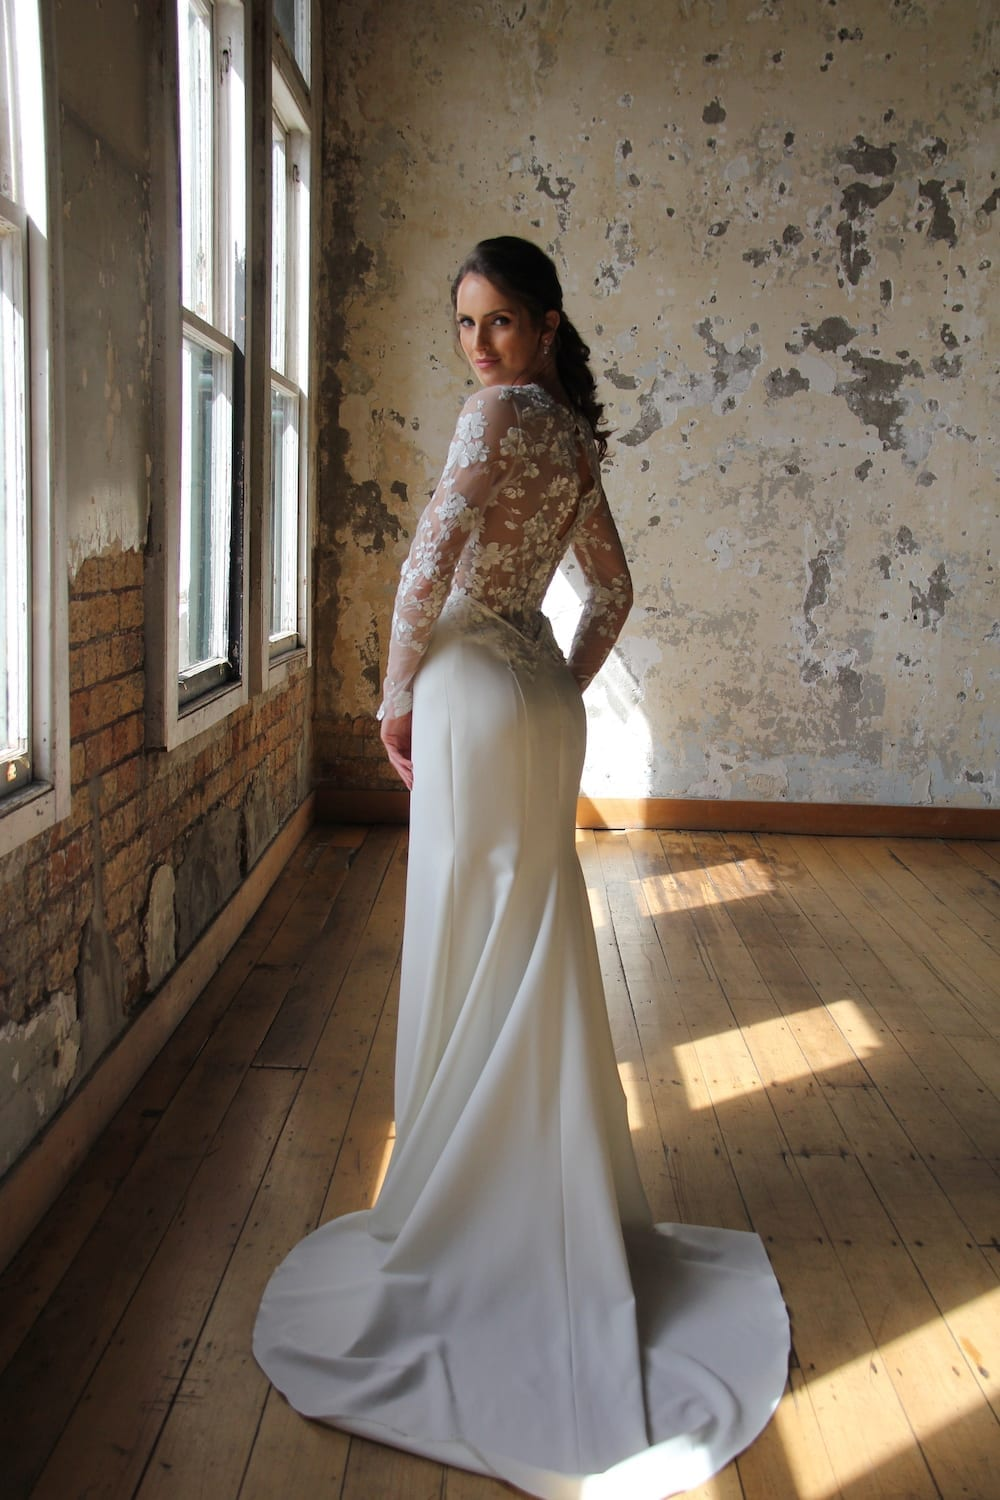 Female model wearing Vinka Design Modern Muse Wedding Dress. In chic warehouse the back detail of a gown with Long slender lace sleeves and a high neck subtle silver thread mixed in with ivory tones down into the stretch skirt.